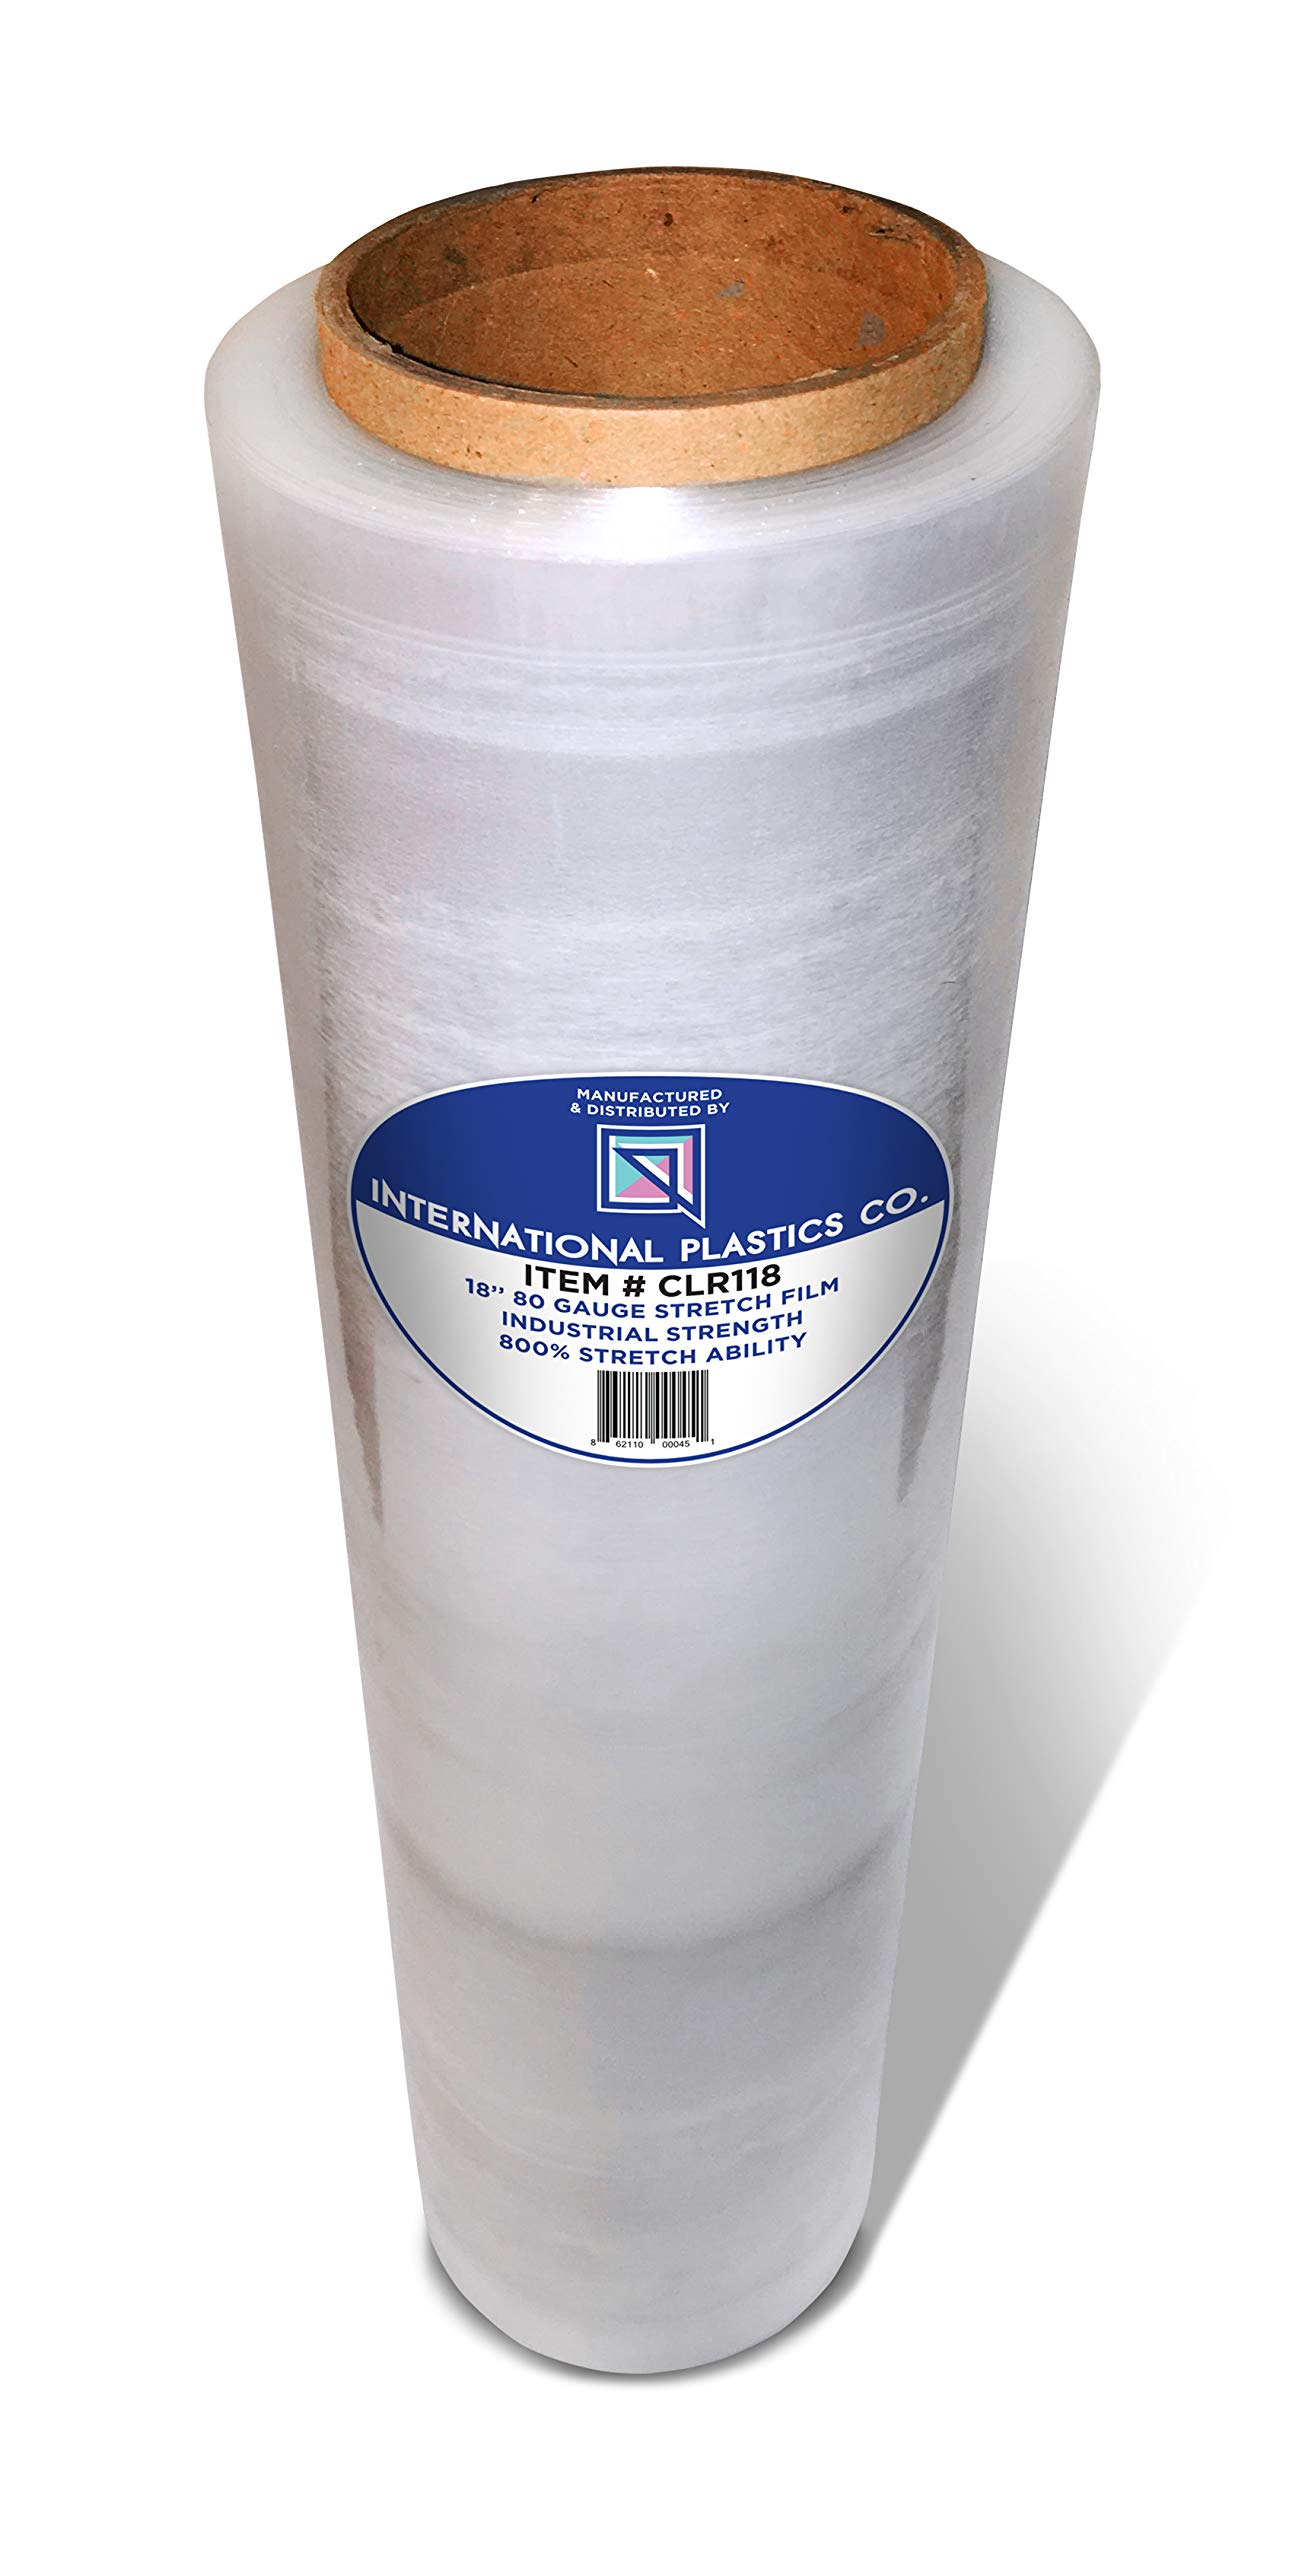 18'' Stretch Film/Wrap 1100 feet 7 Layers 80 Gauge Industrial Strength 20 Microns Clear Cling Durable Adhering Packing Moving Packaging Heavy Duty Shrink Film (1) by International Plastics Co.